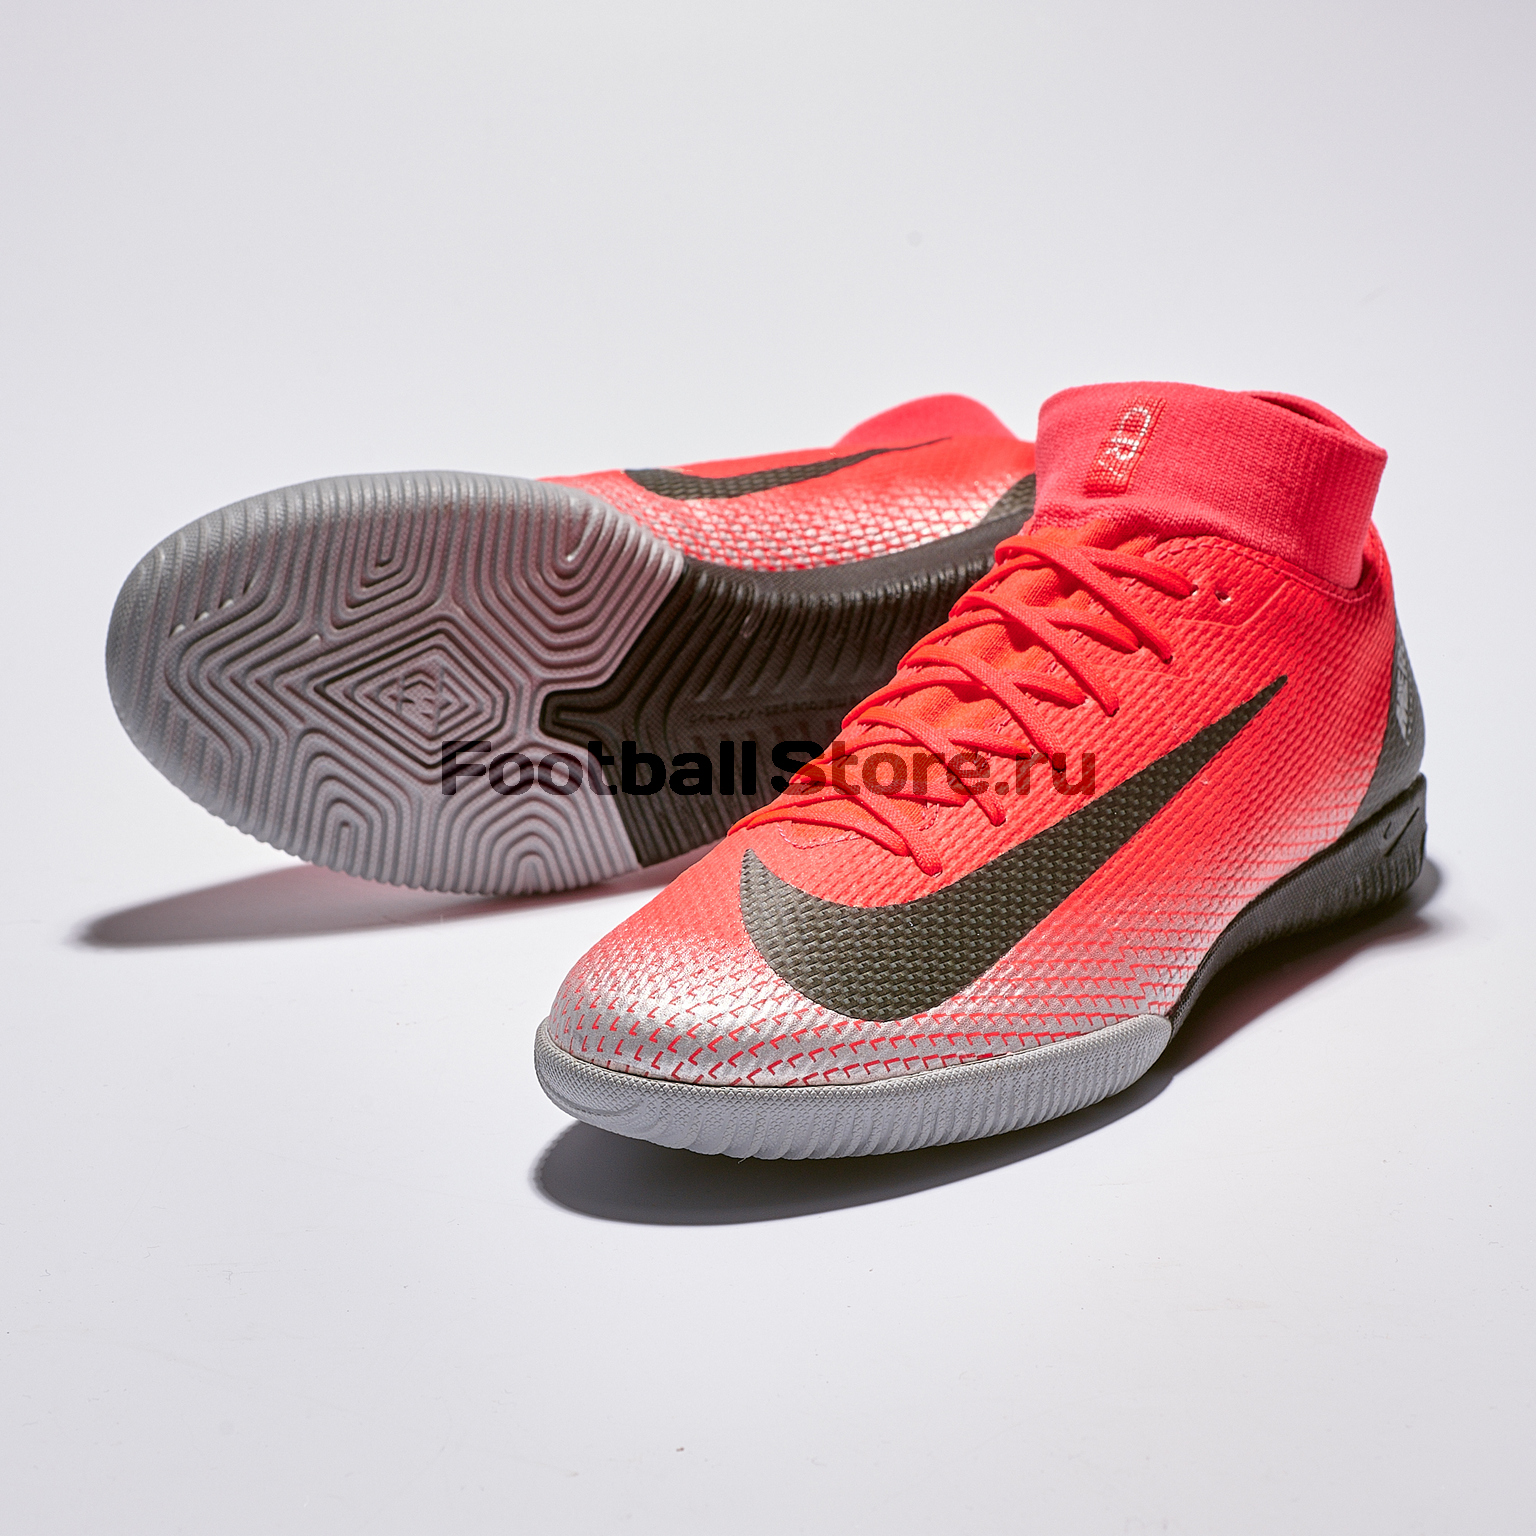 Футзалки Nike Superfly 6 Academy CR7 IC AJ3567-600 бутсы nike superfly 6 elite sg pro ac ah7366 060